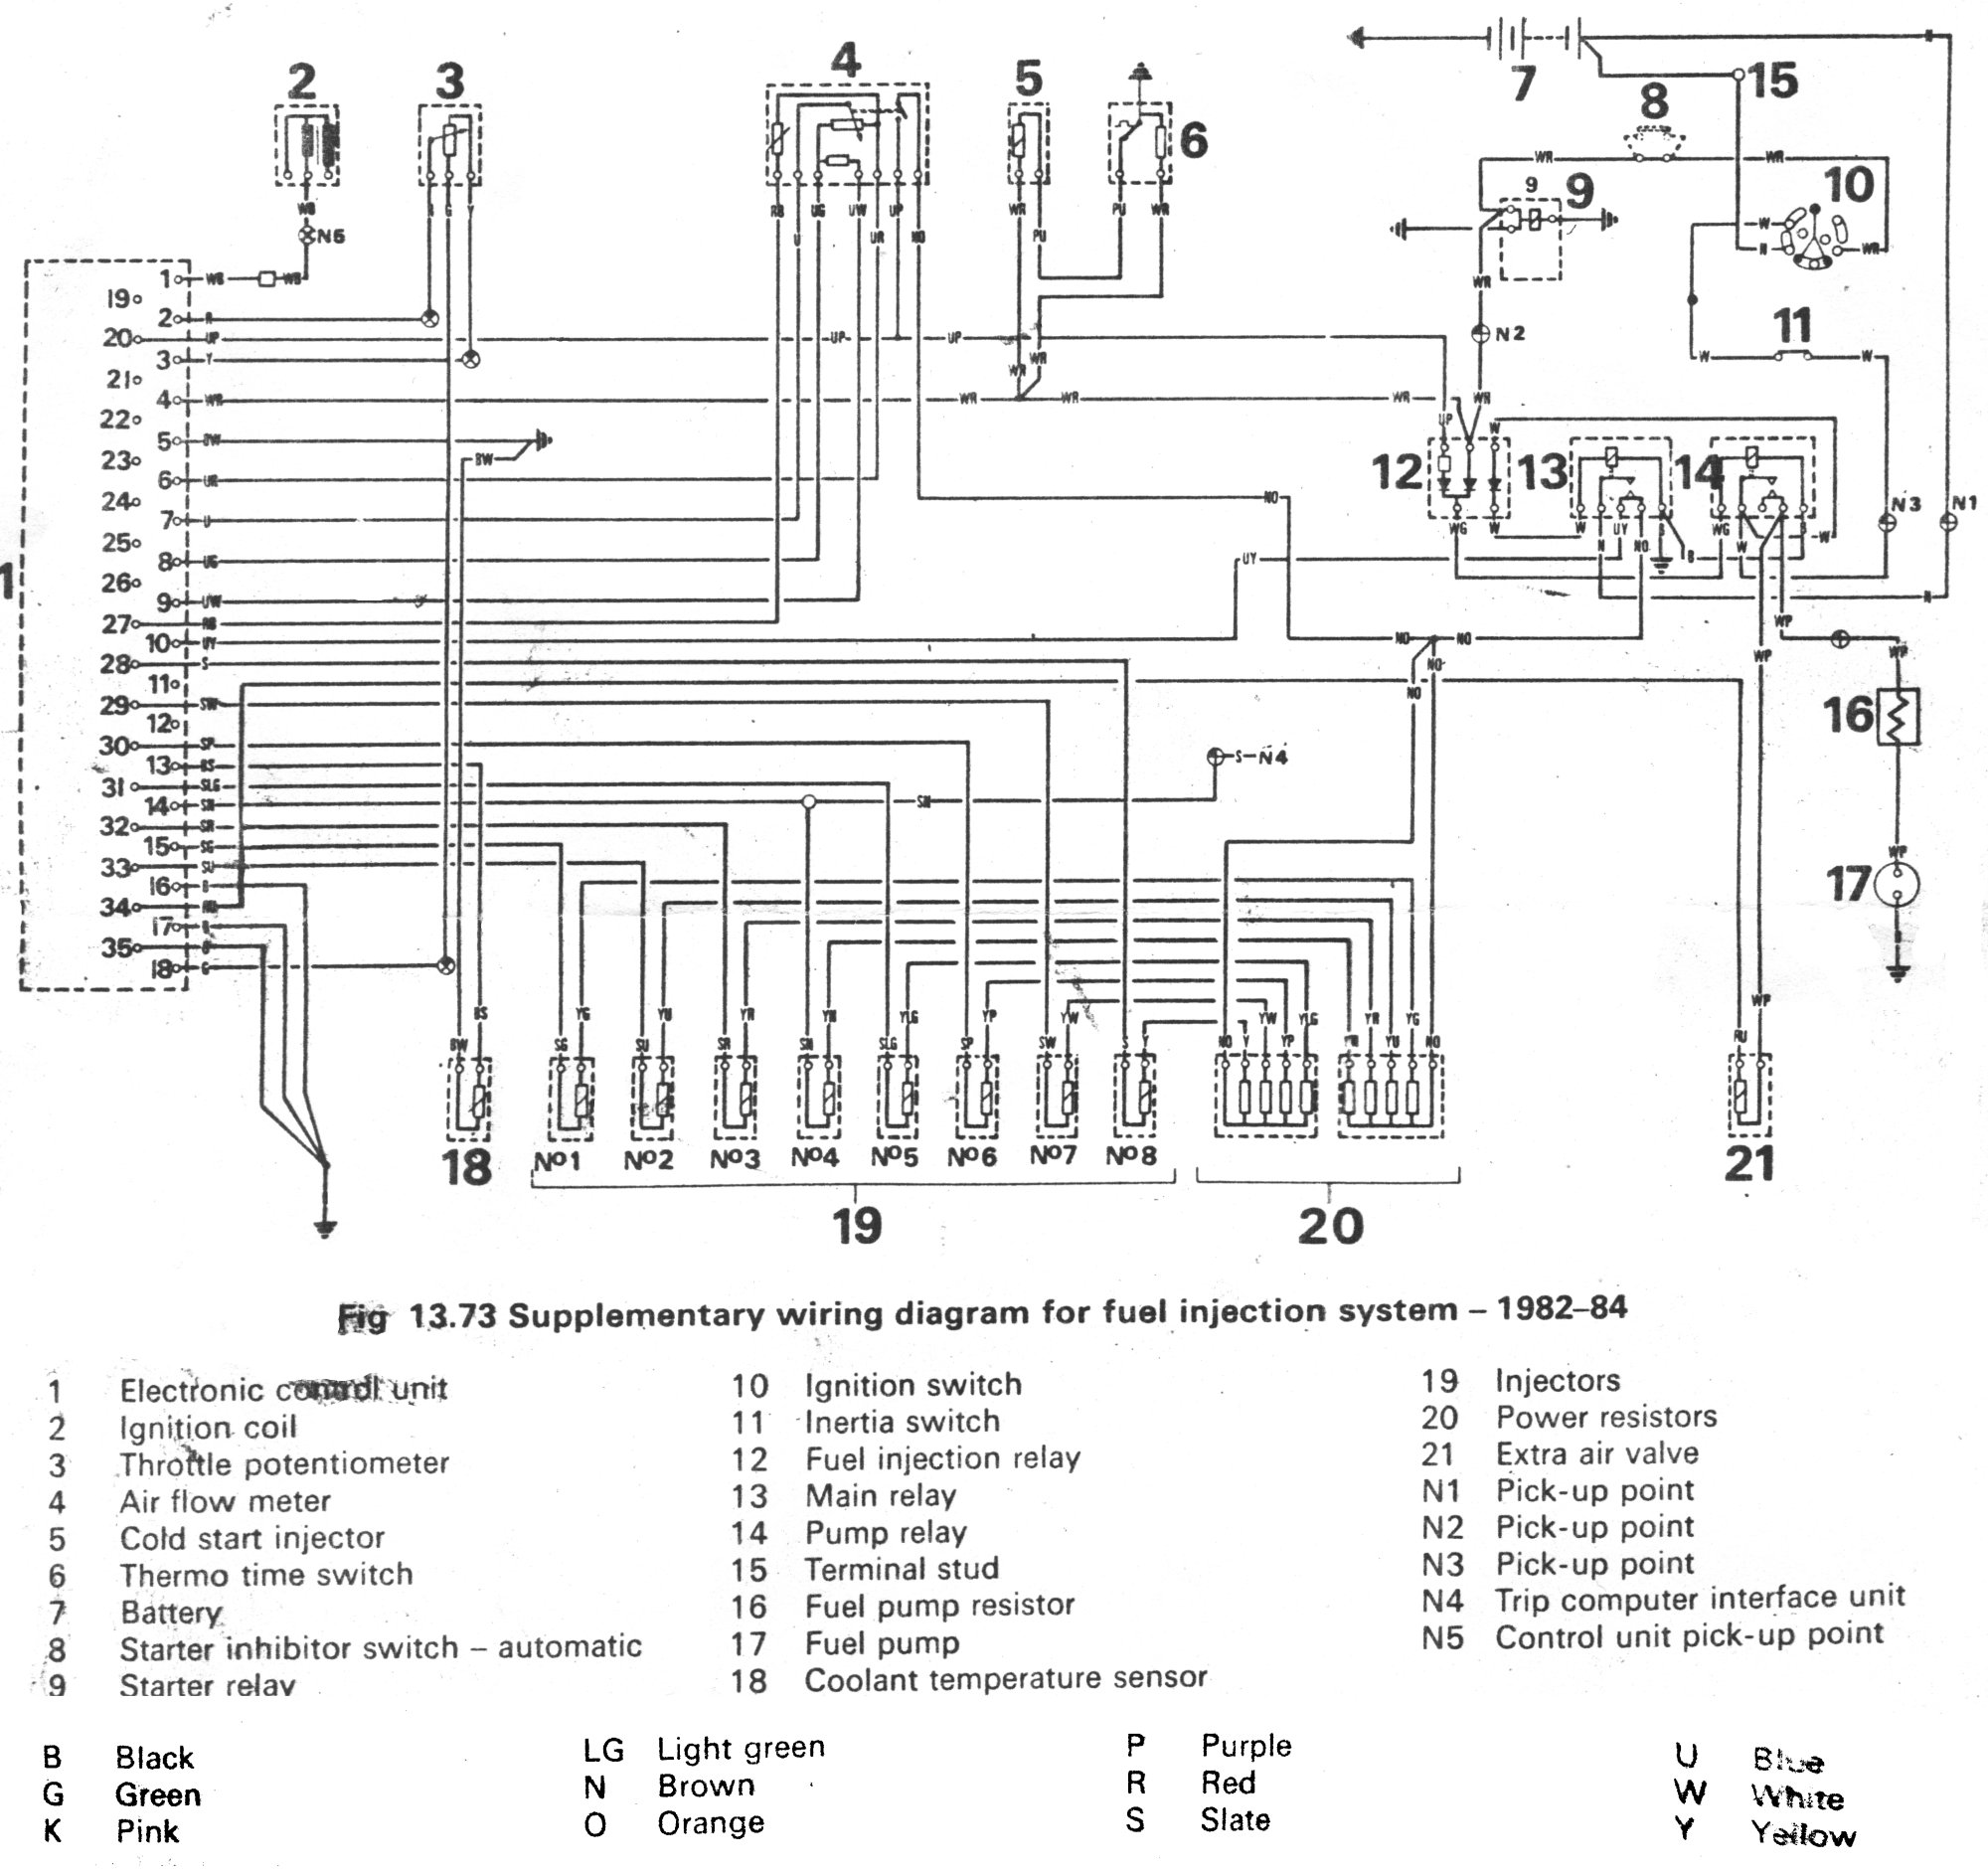 1999 ford ranger xlt fuse box diagram TgqcMDc wiring diagram for car 1998 ford f 150 wiring diagram 1999 ford ranger ignition wiring diagram at gsmportal.co